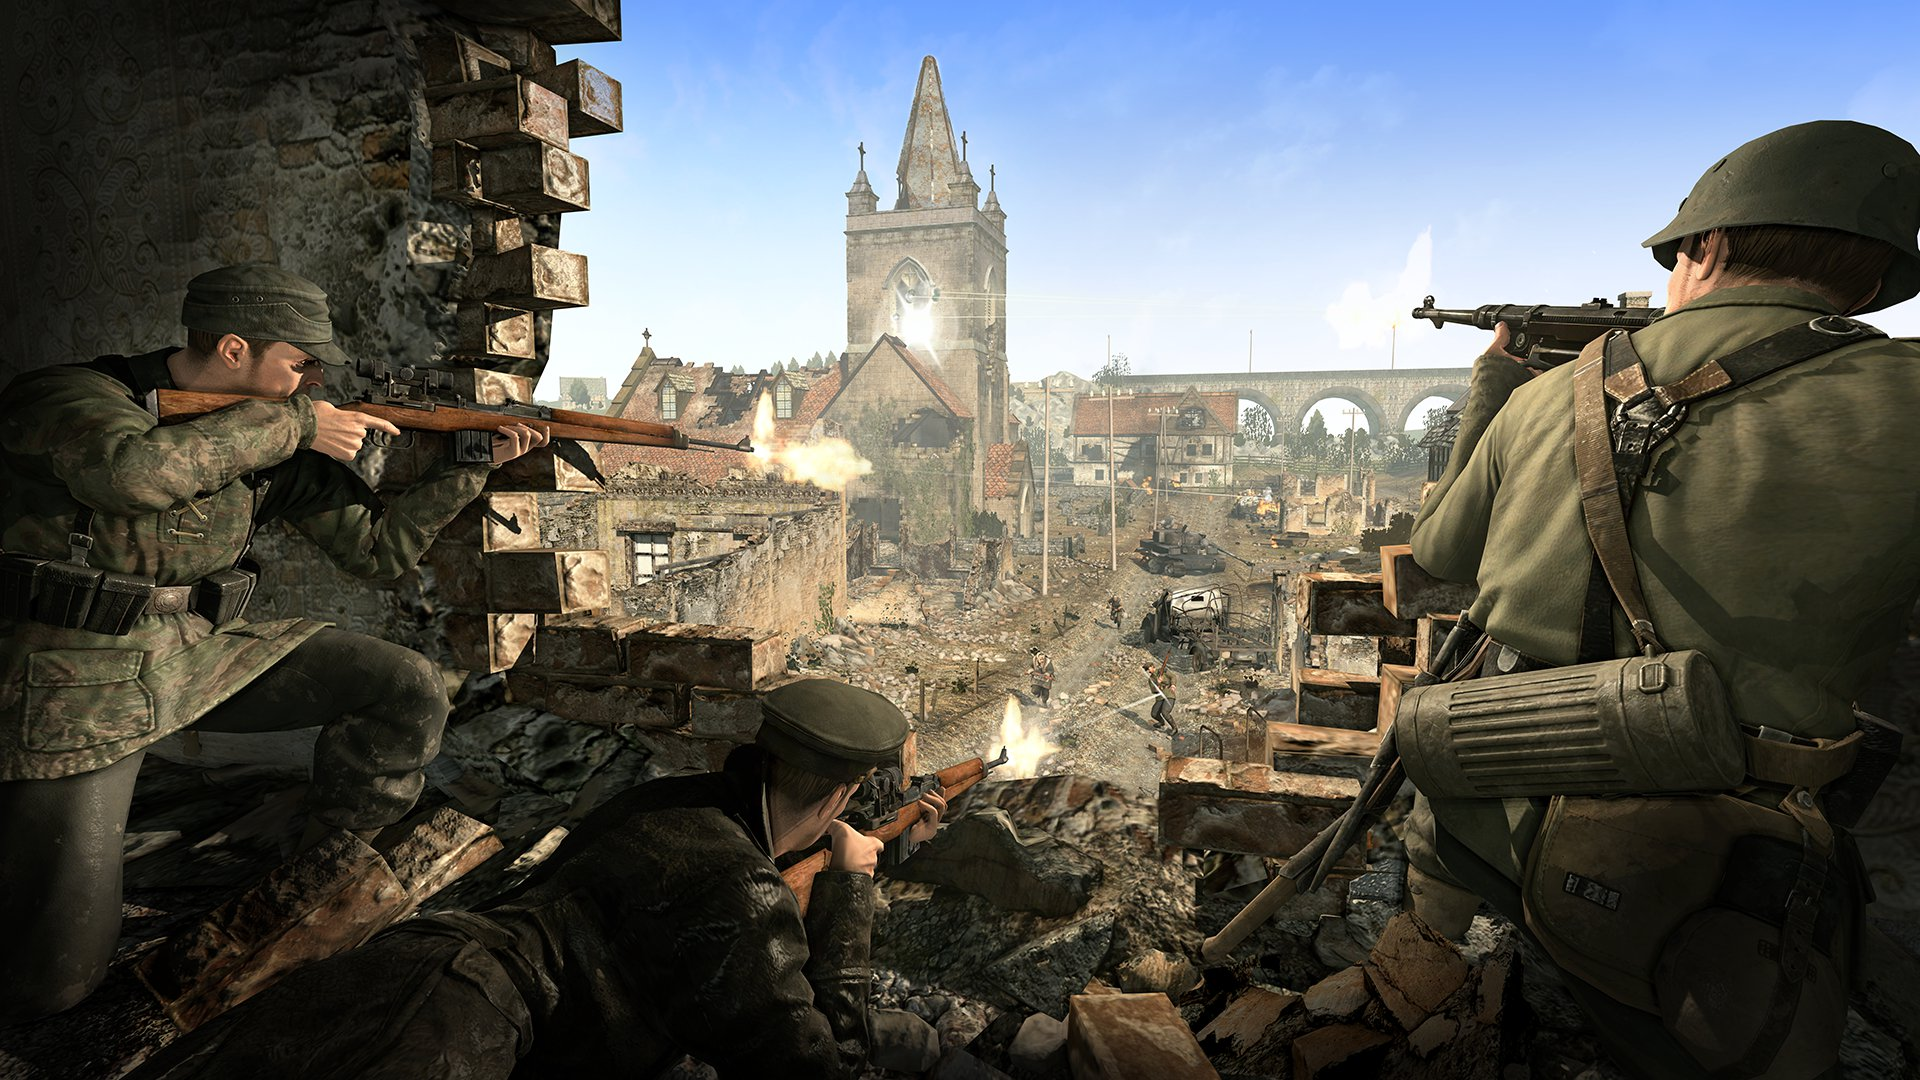 sniper elite backgrounds A4